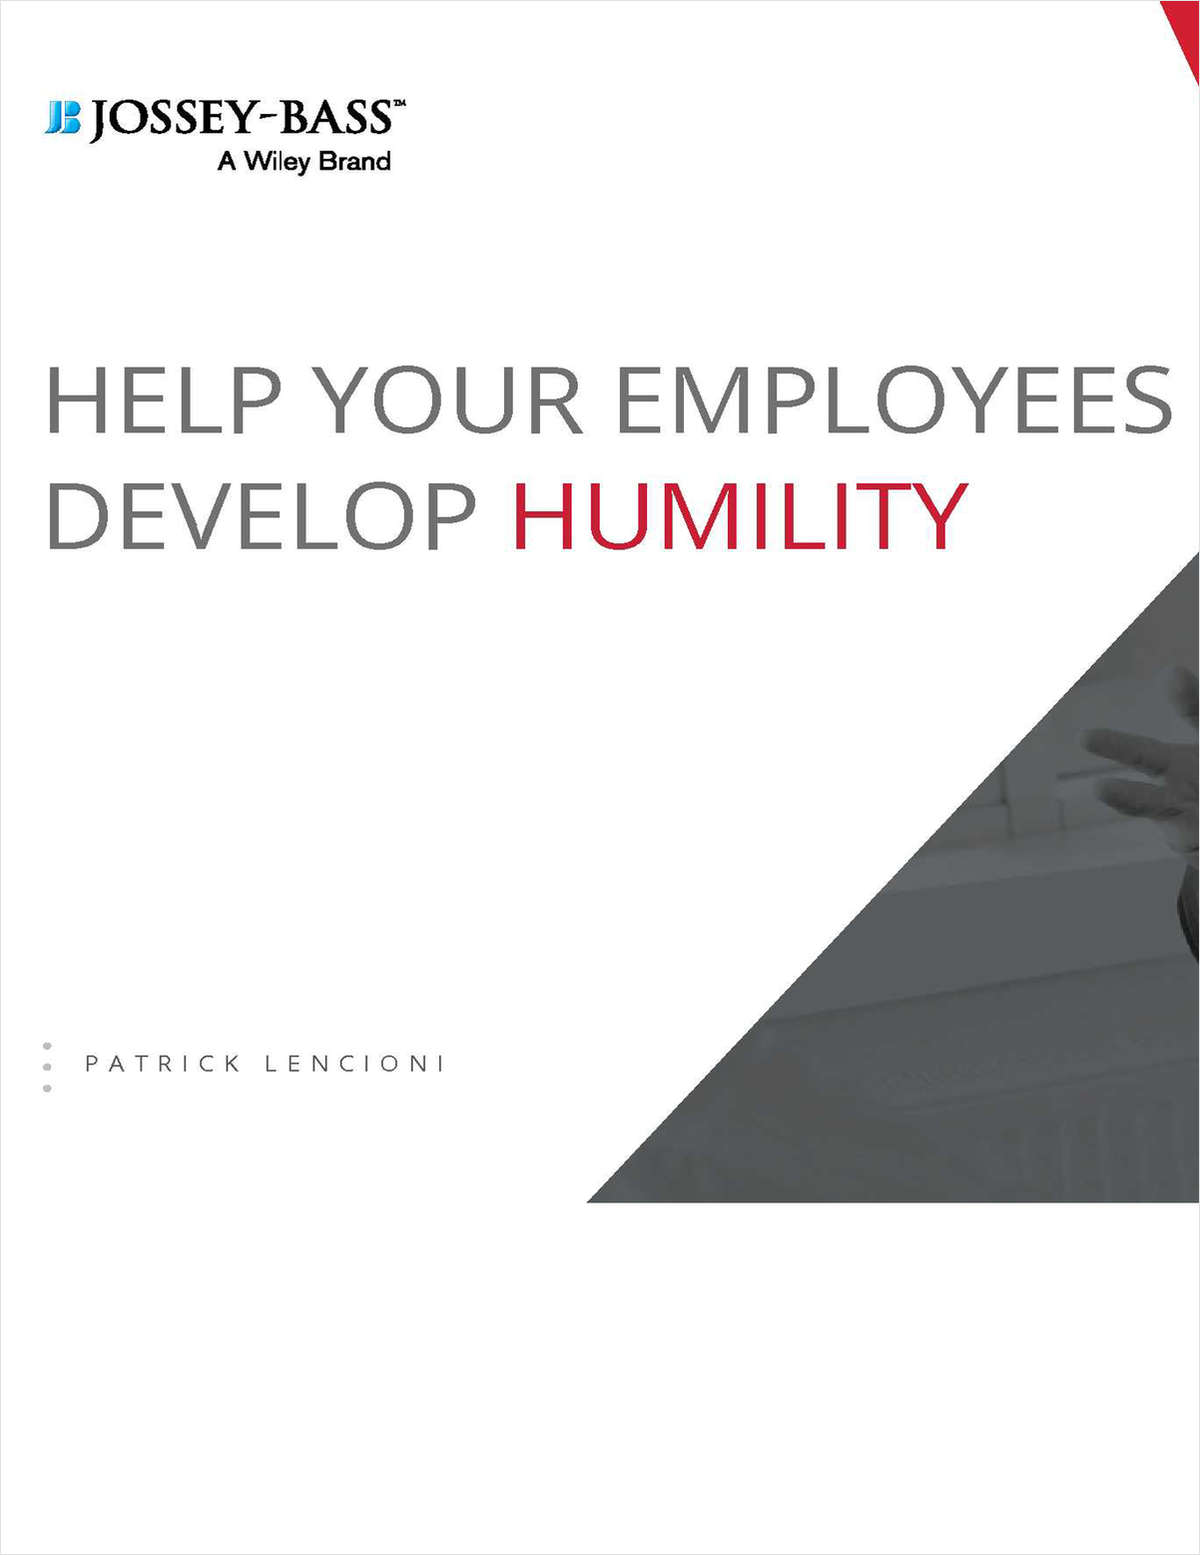 Help Your Employees Develop Humility